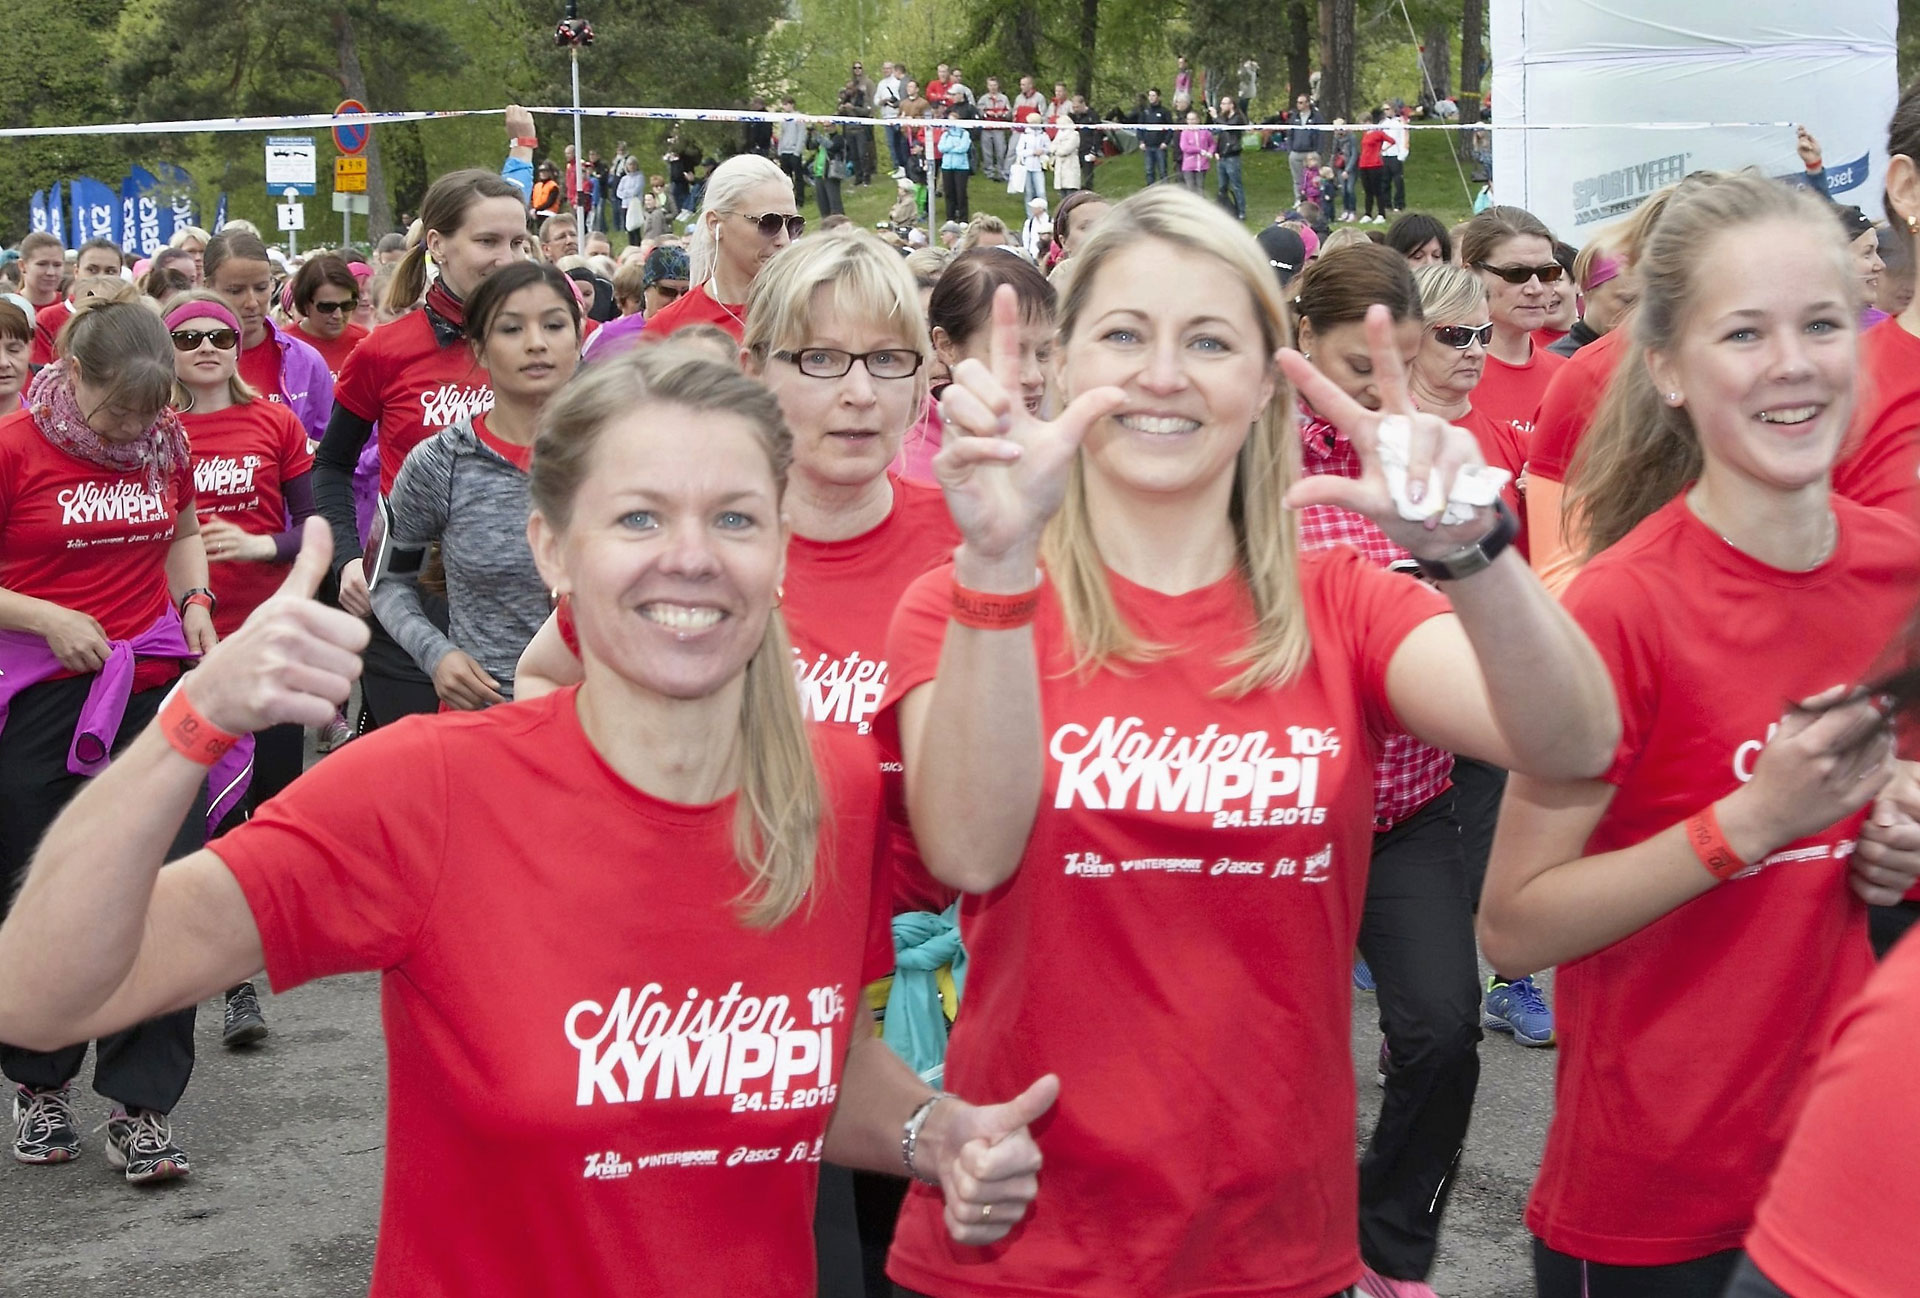 Link to event Citroën Naisten Kymppi - Women's Fun Run 2019